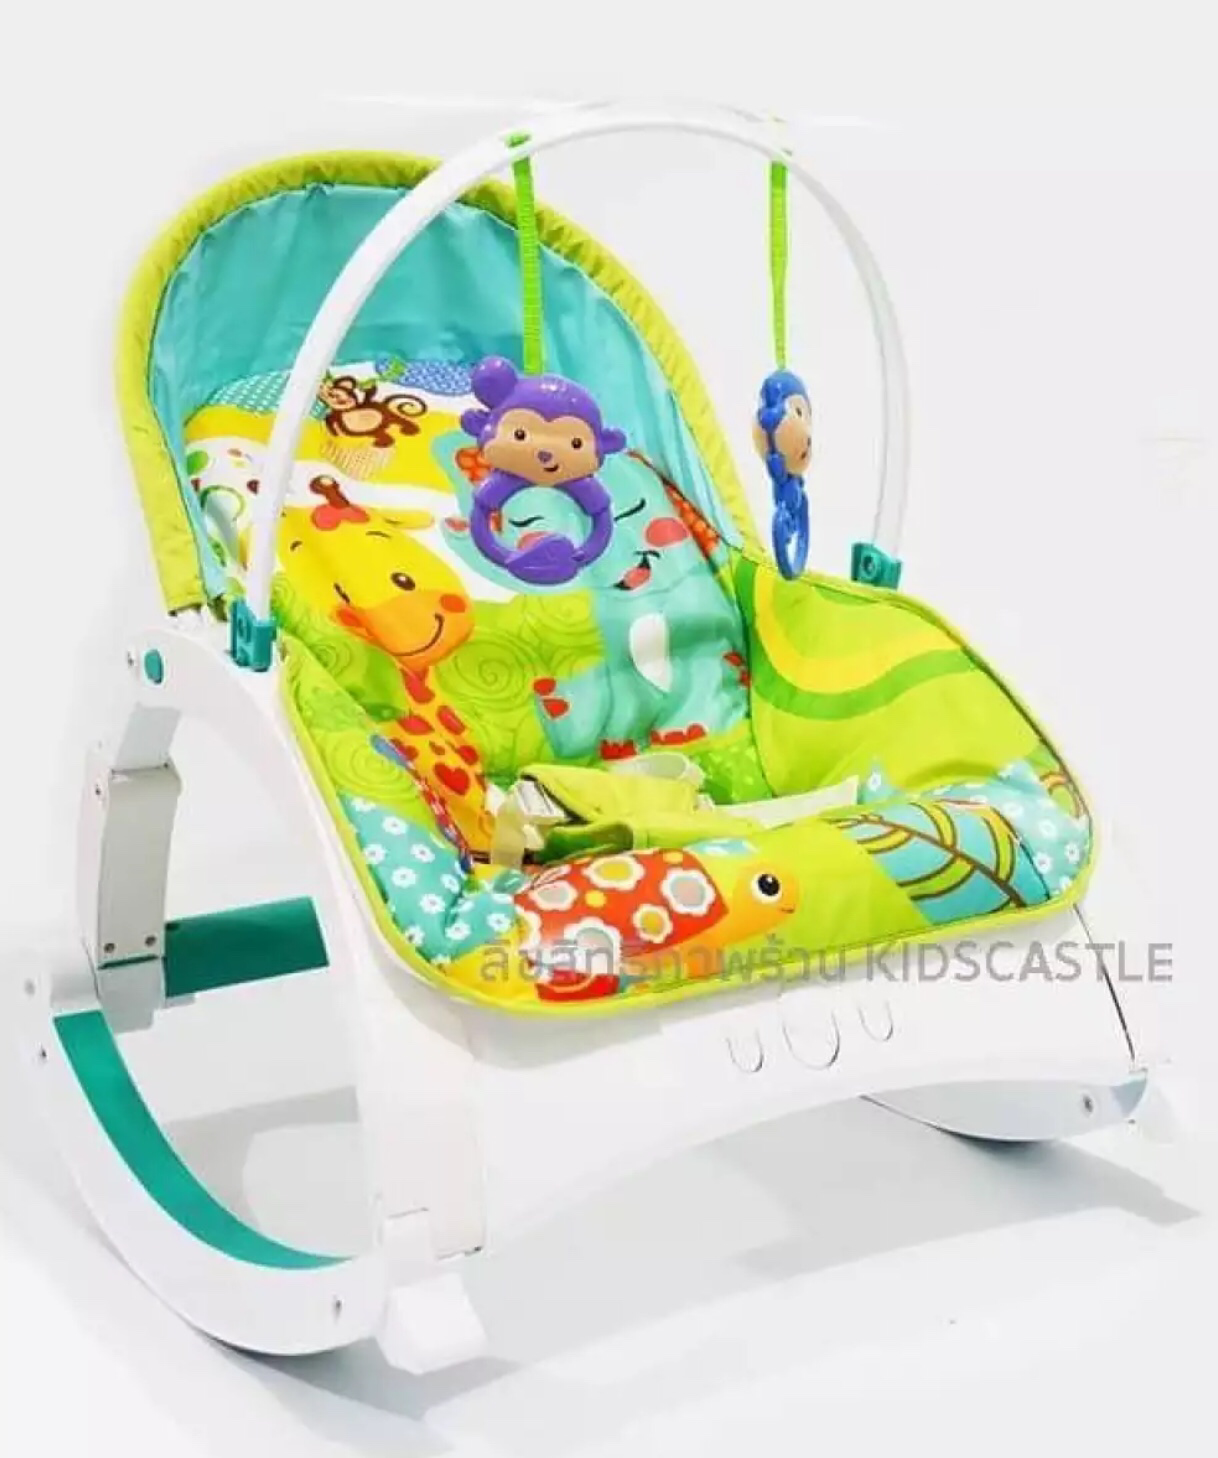 Toddler Rocker Bouncy Seat with Vibration & Music 00054